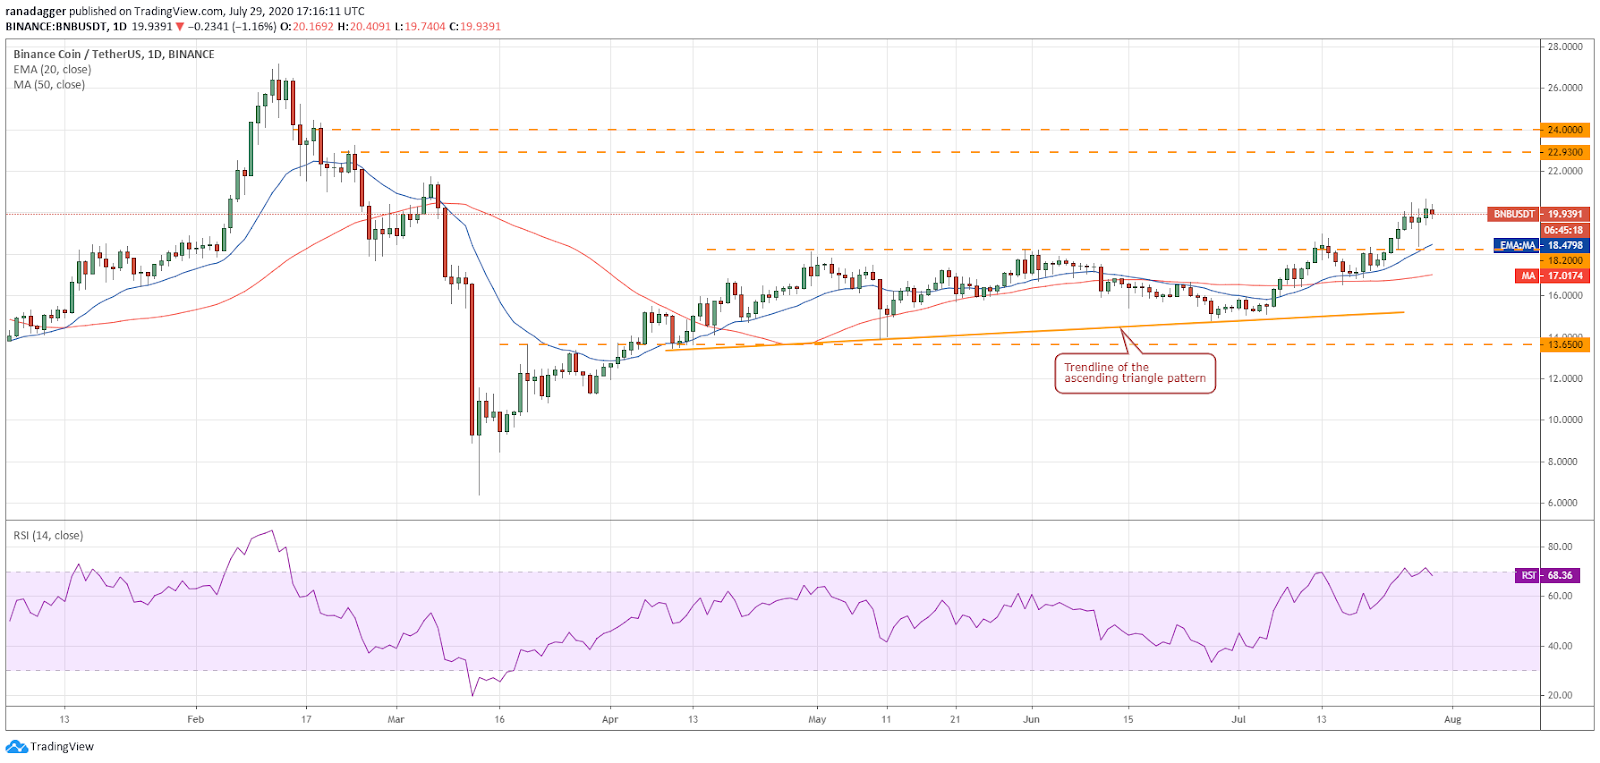 BNB/USD daily chart. Source: TradingView